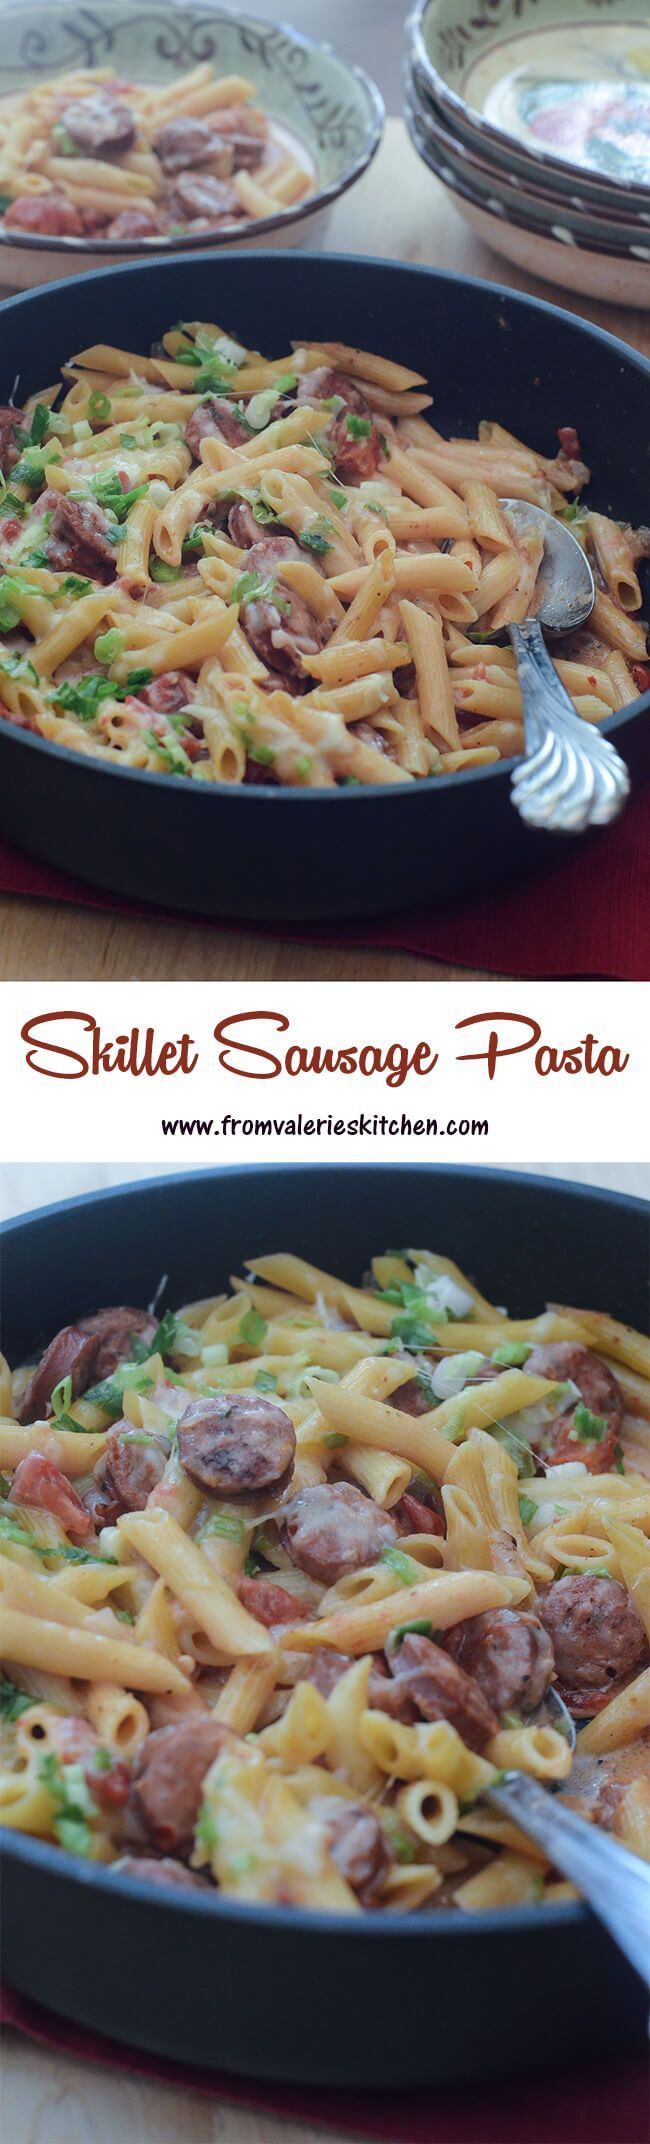 Cooks all in one pot in 30 minutes! ~ http://www.fromvalerieskitchen.com